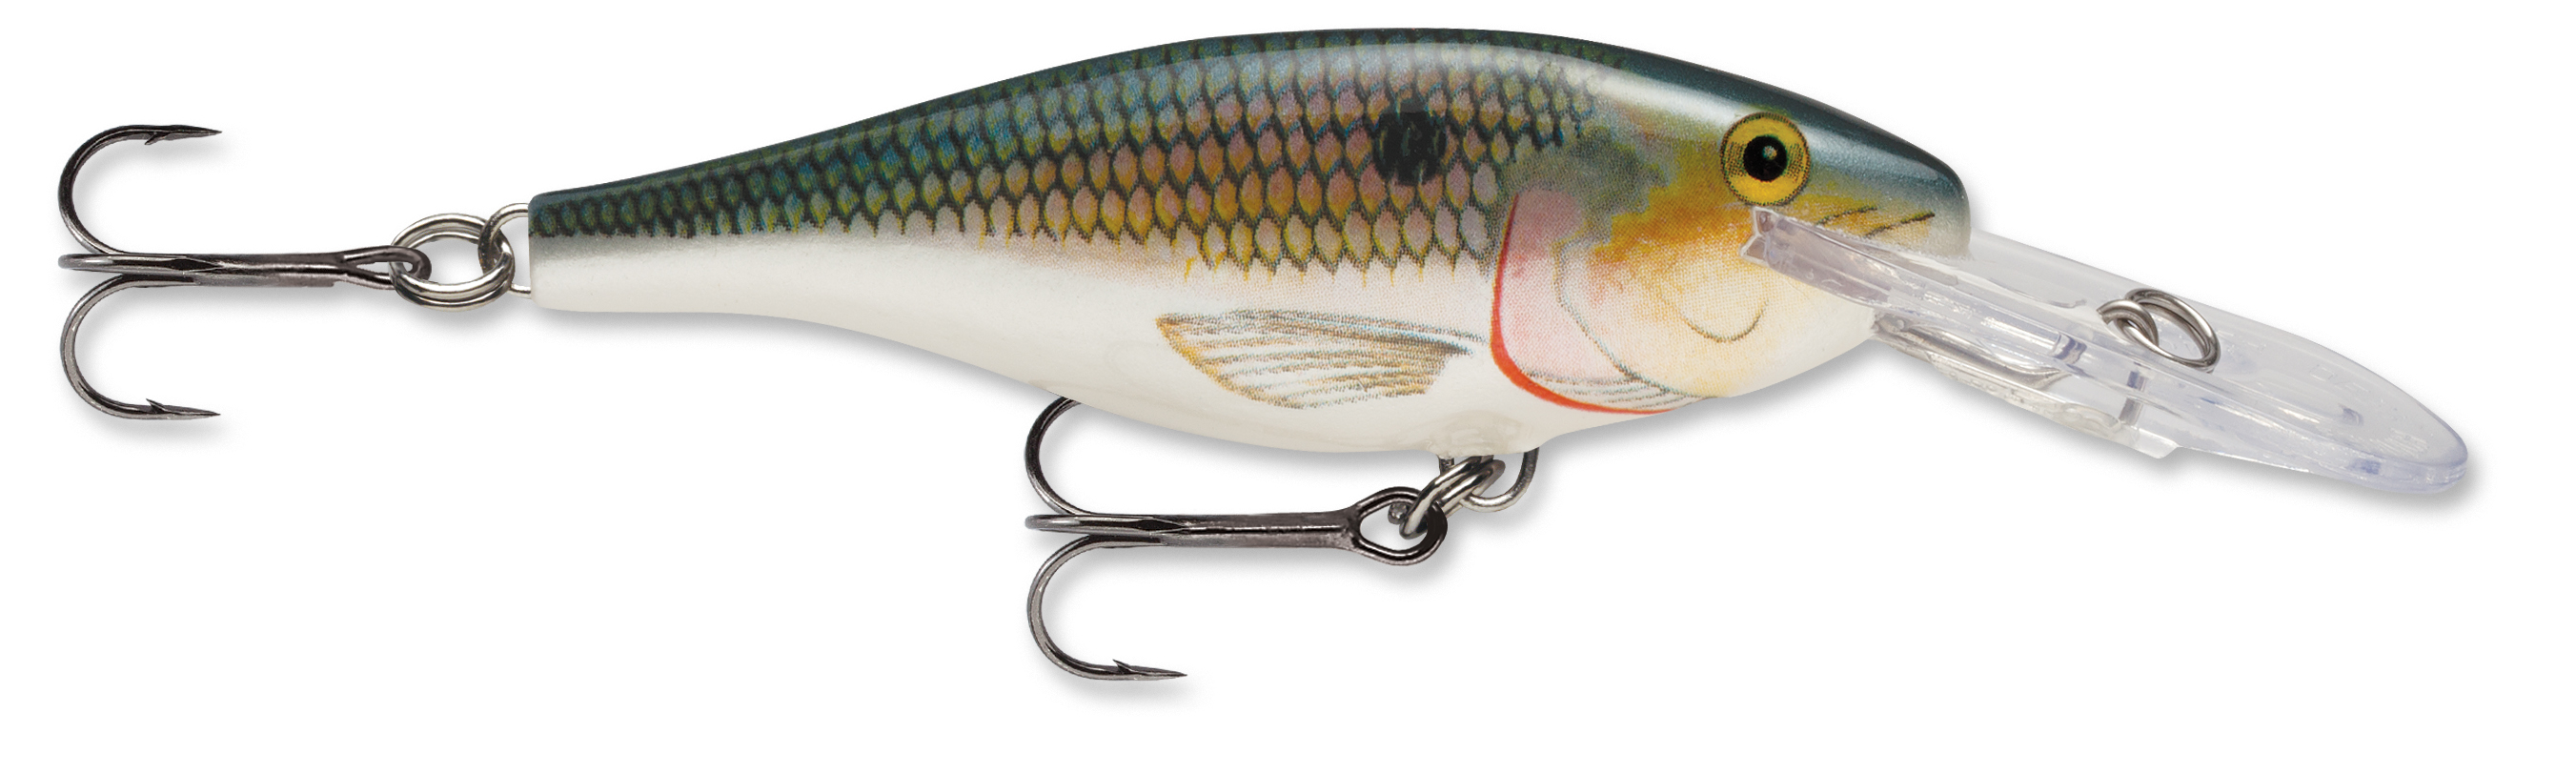 How to Choose Lures for Bass Fishing foto